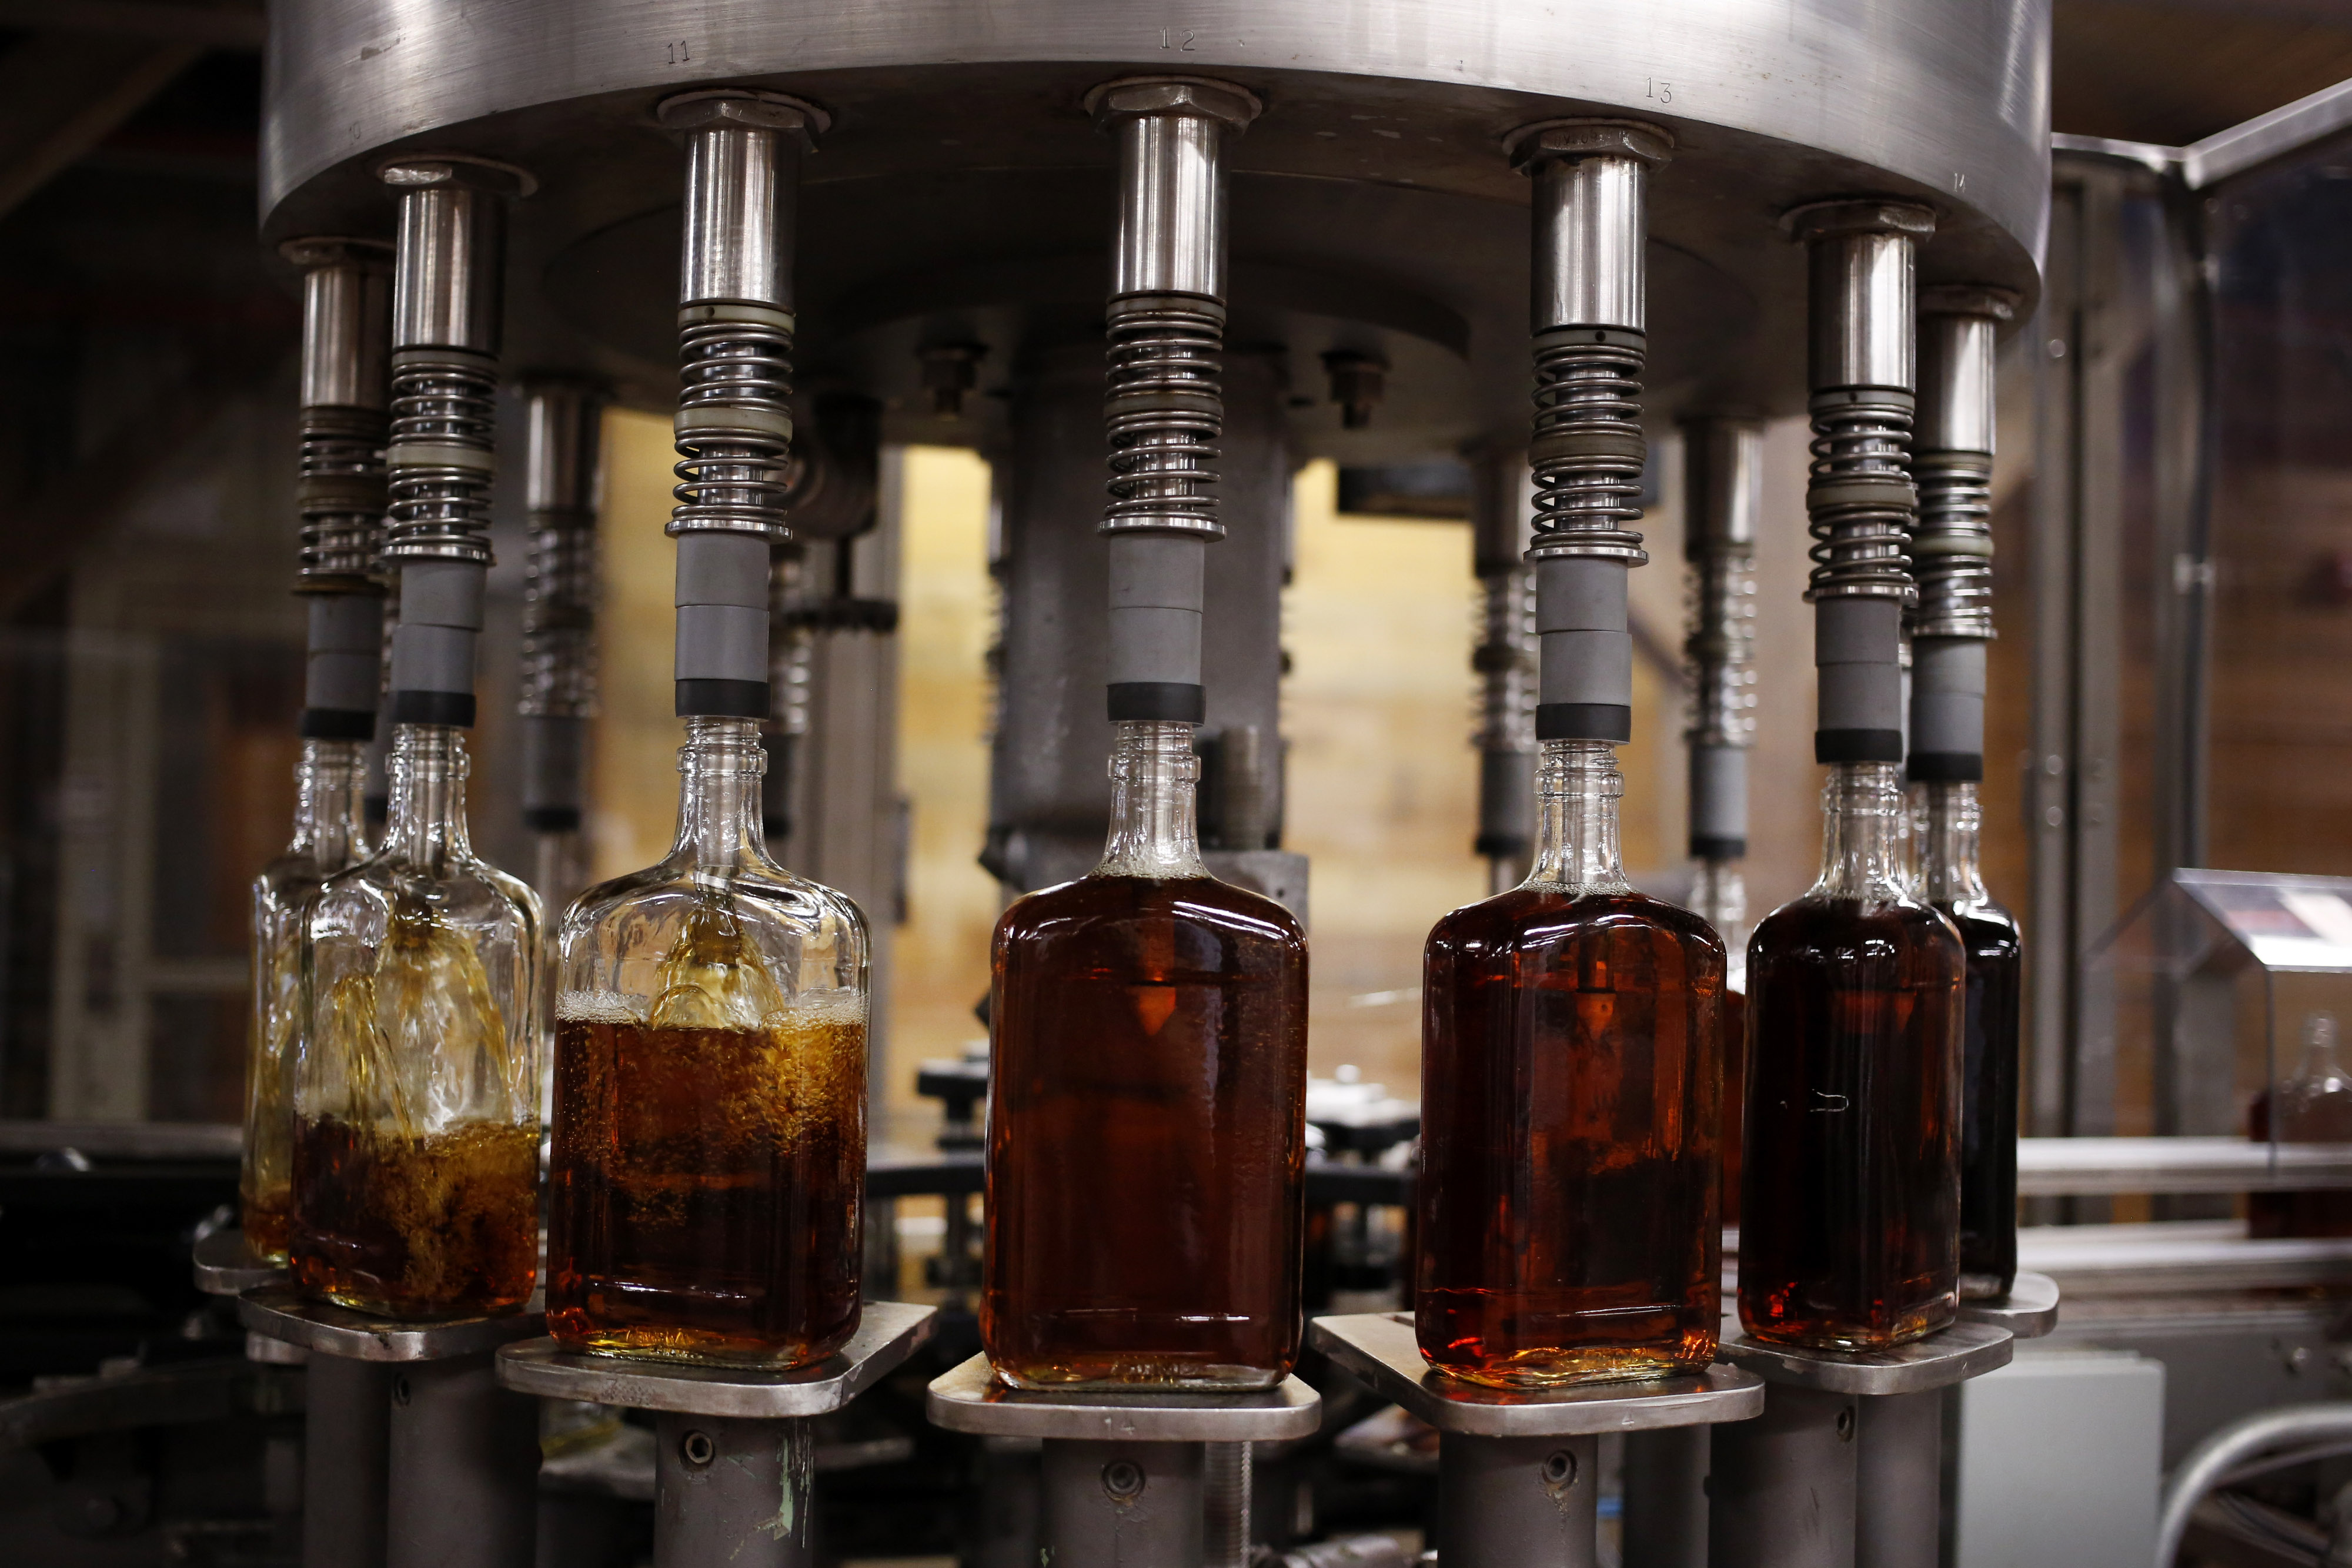 Bottles of single barrel bourbon are filled on the bottling line at a distillery in Kentucky.